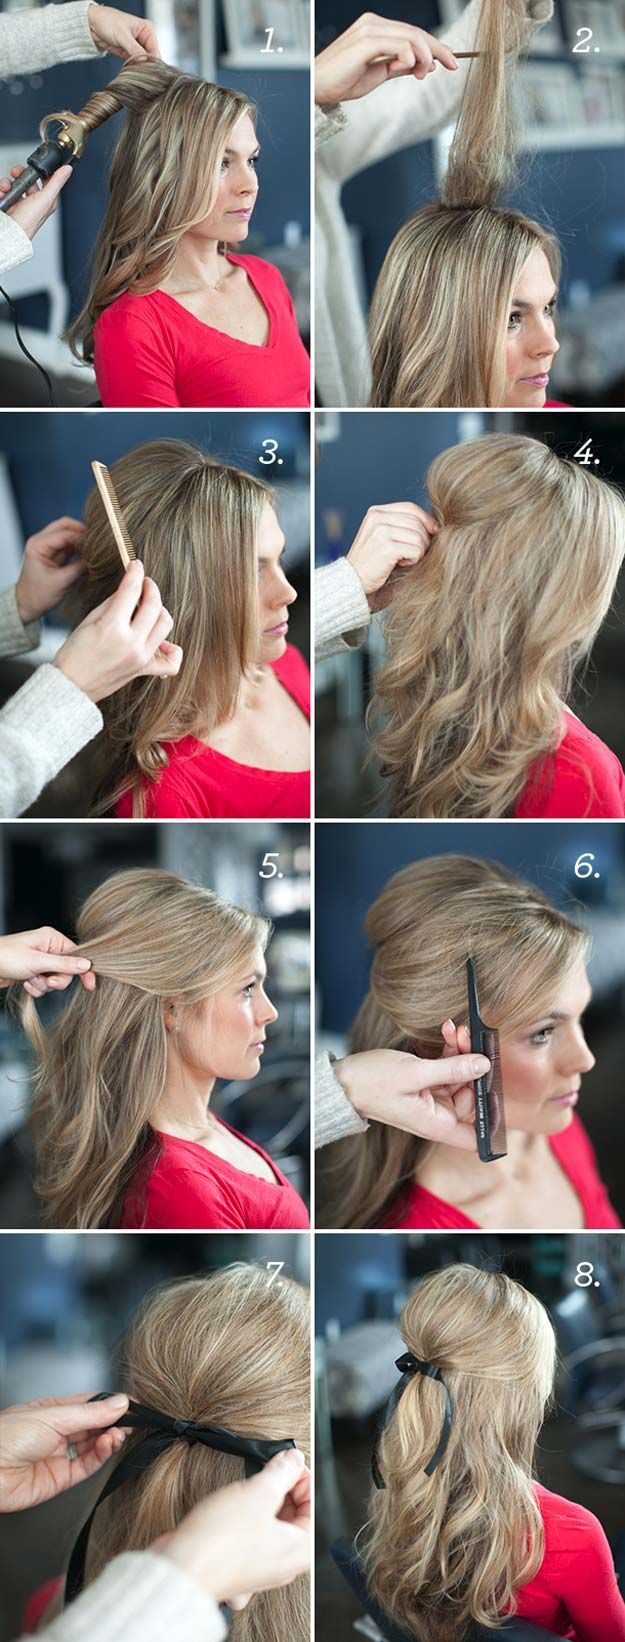 Best Hairstyles For Your 20s -Put a Bow on It- Hair Dos And Don'ts For Your 20...